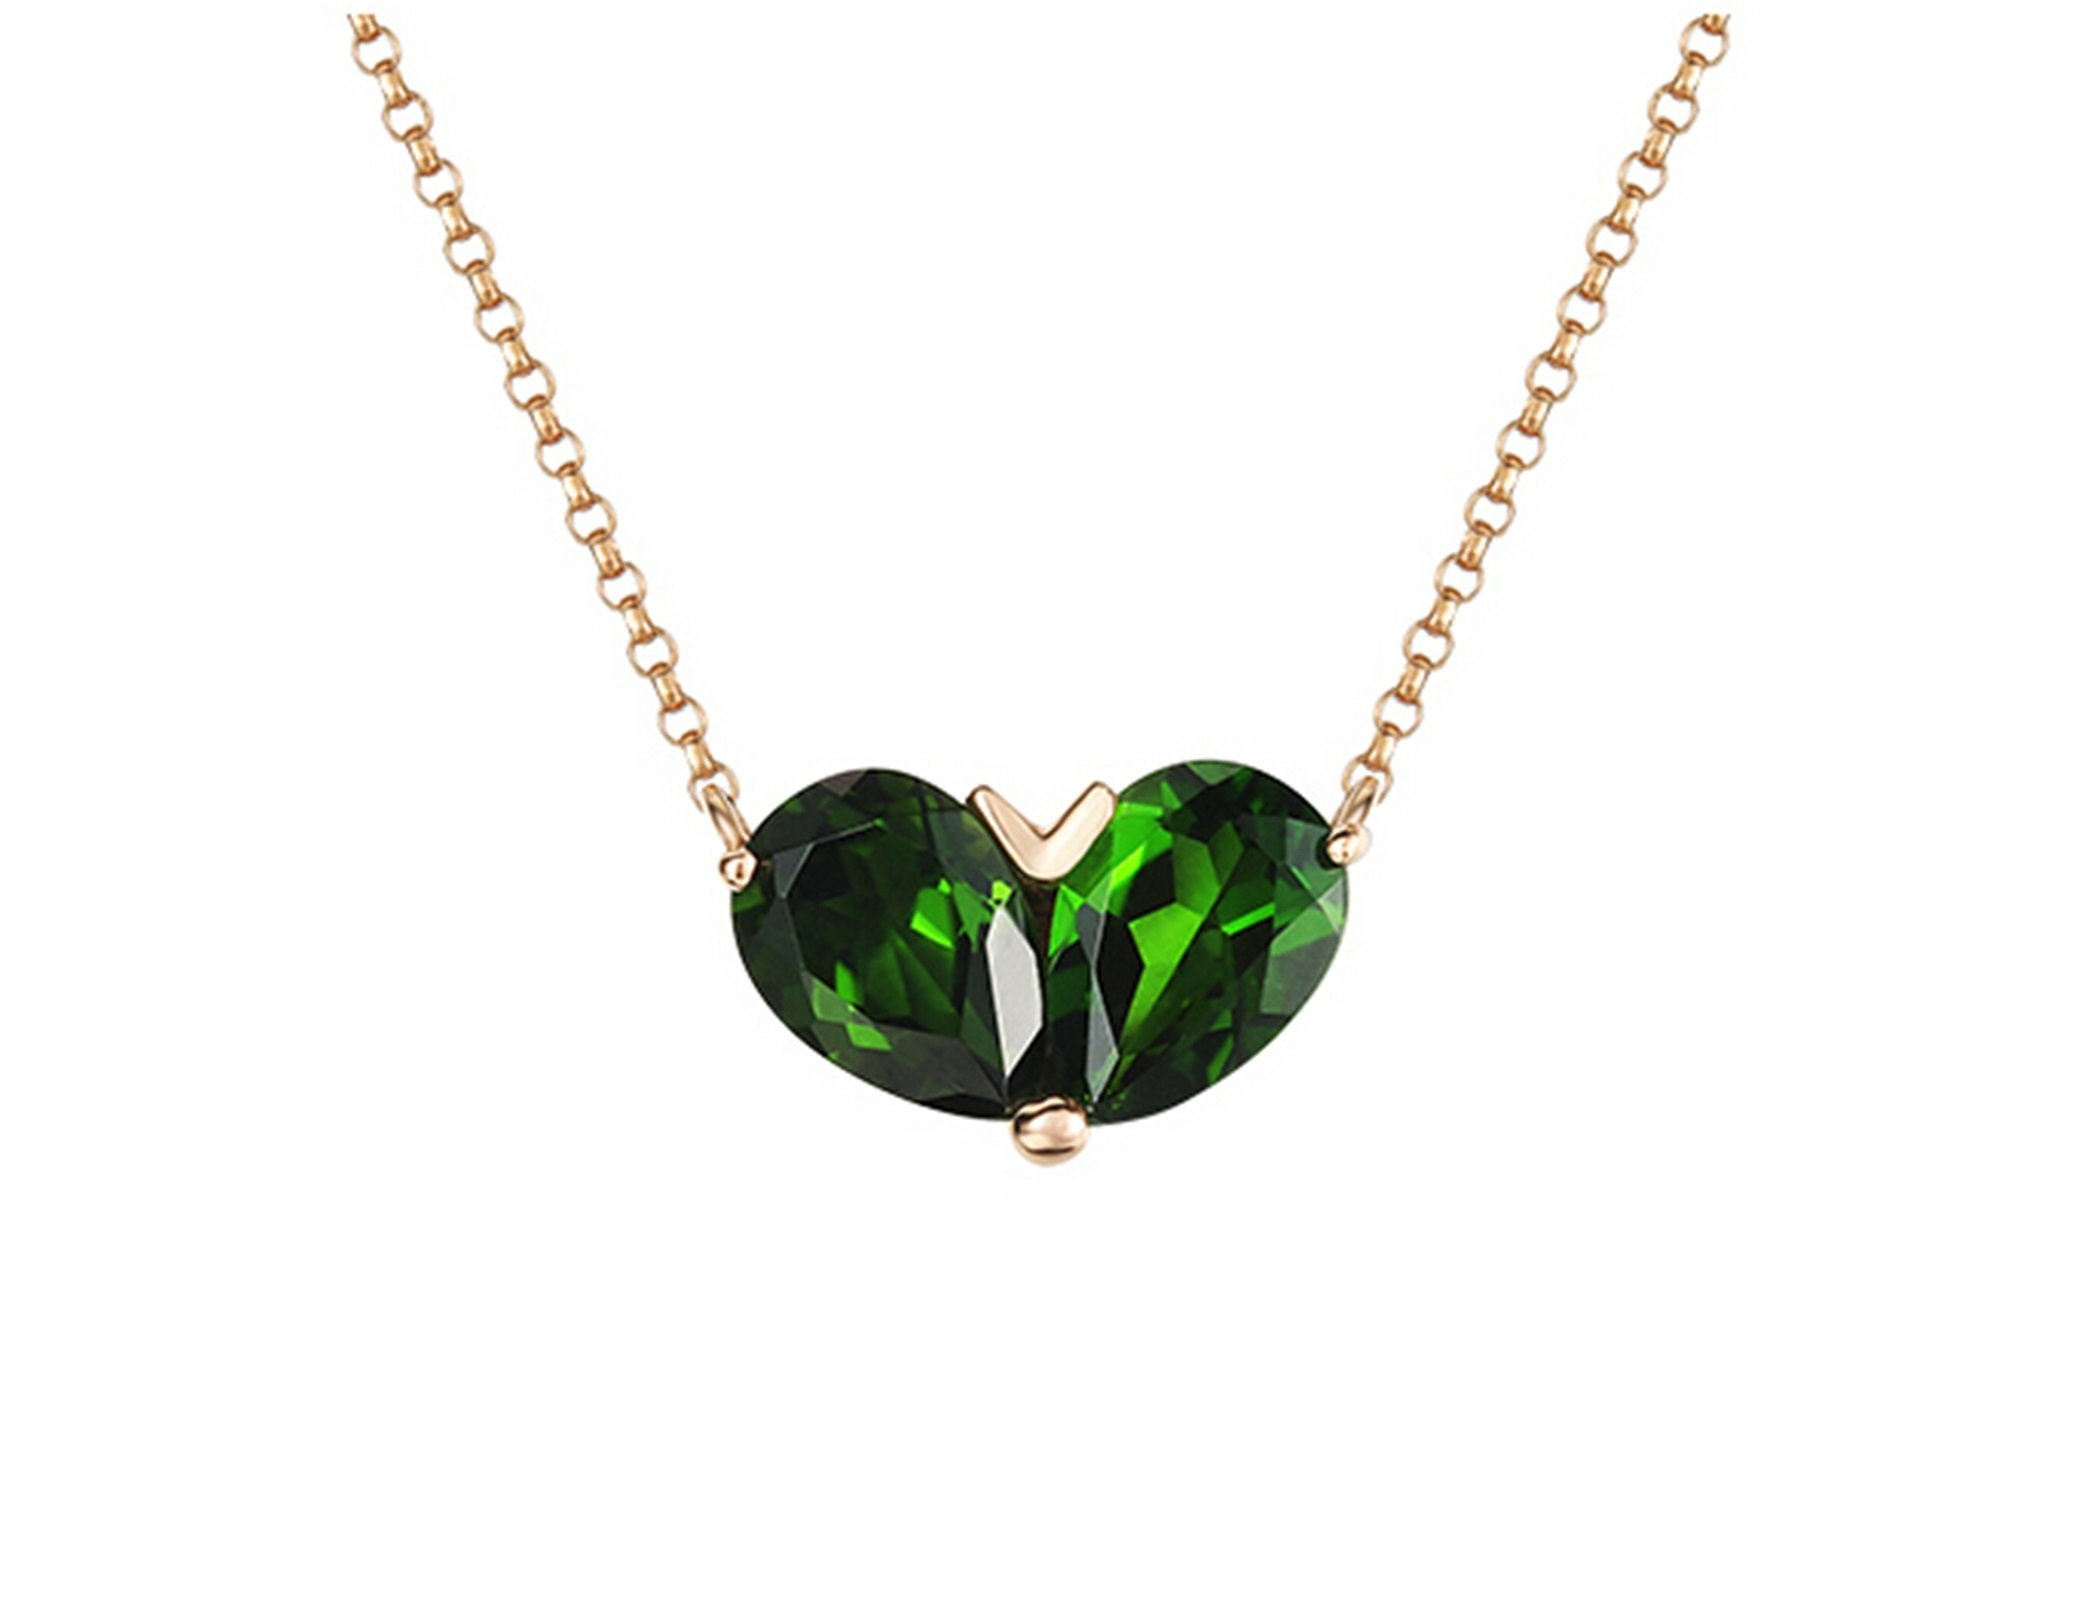 KnSam 18K Gold Necklace For Women Pear Cut Ruby Heart Shape Red 45CM,1.25Ct [Fine Jewelry]